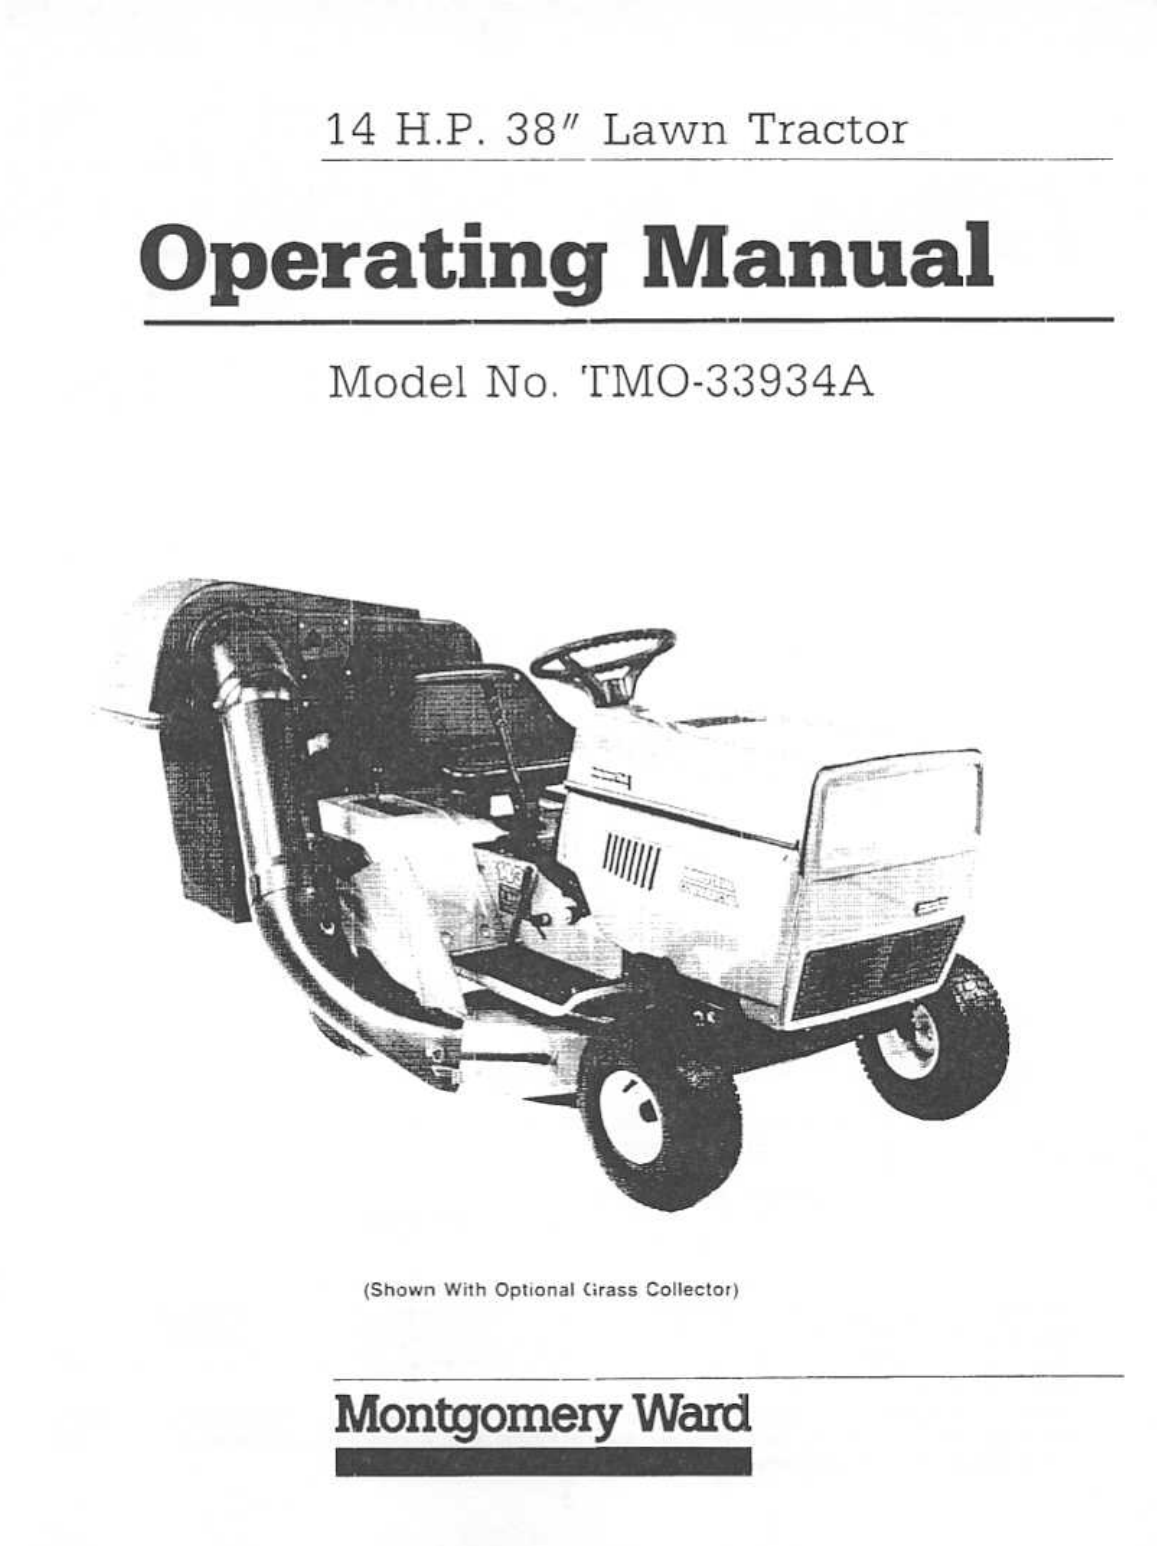 922be6b0 054f 4db4 a9a7 269320fe4bb6 bg1 montgomery ward lawn mower tmo 33934a user guide manualsonline com Montgomery Ward Tractor Manual at n-0.co